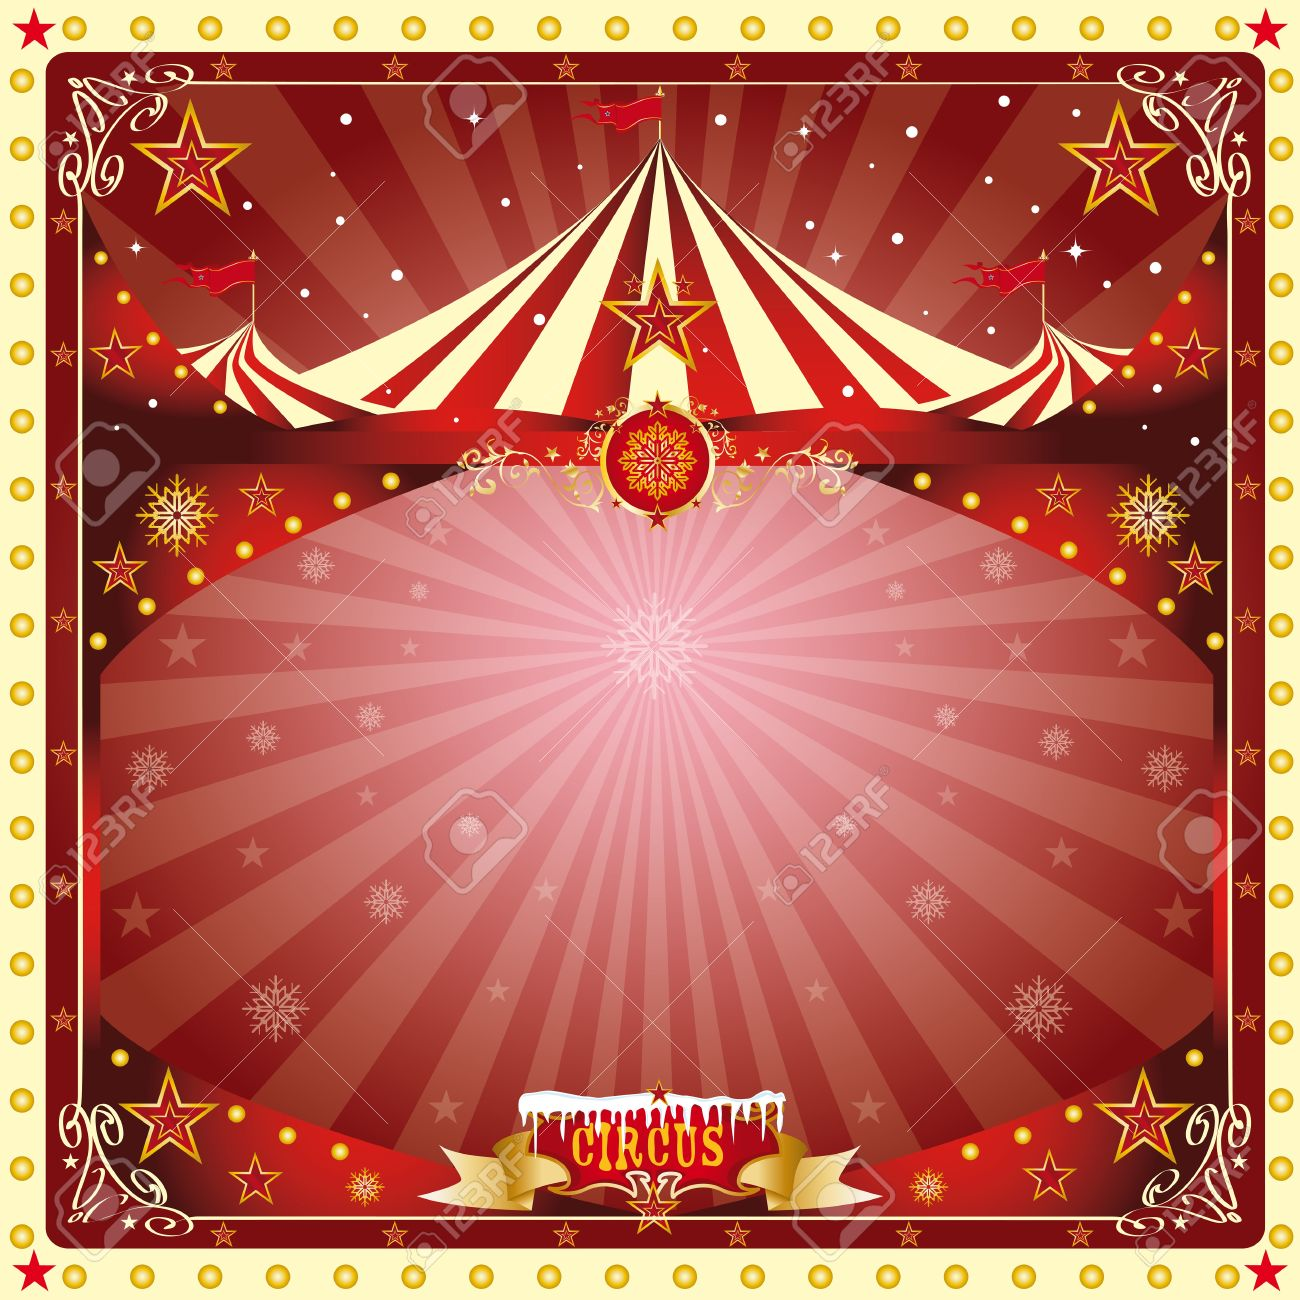 A circus christmas or Happy new year s card for you Stock Vector - 16863889